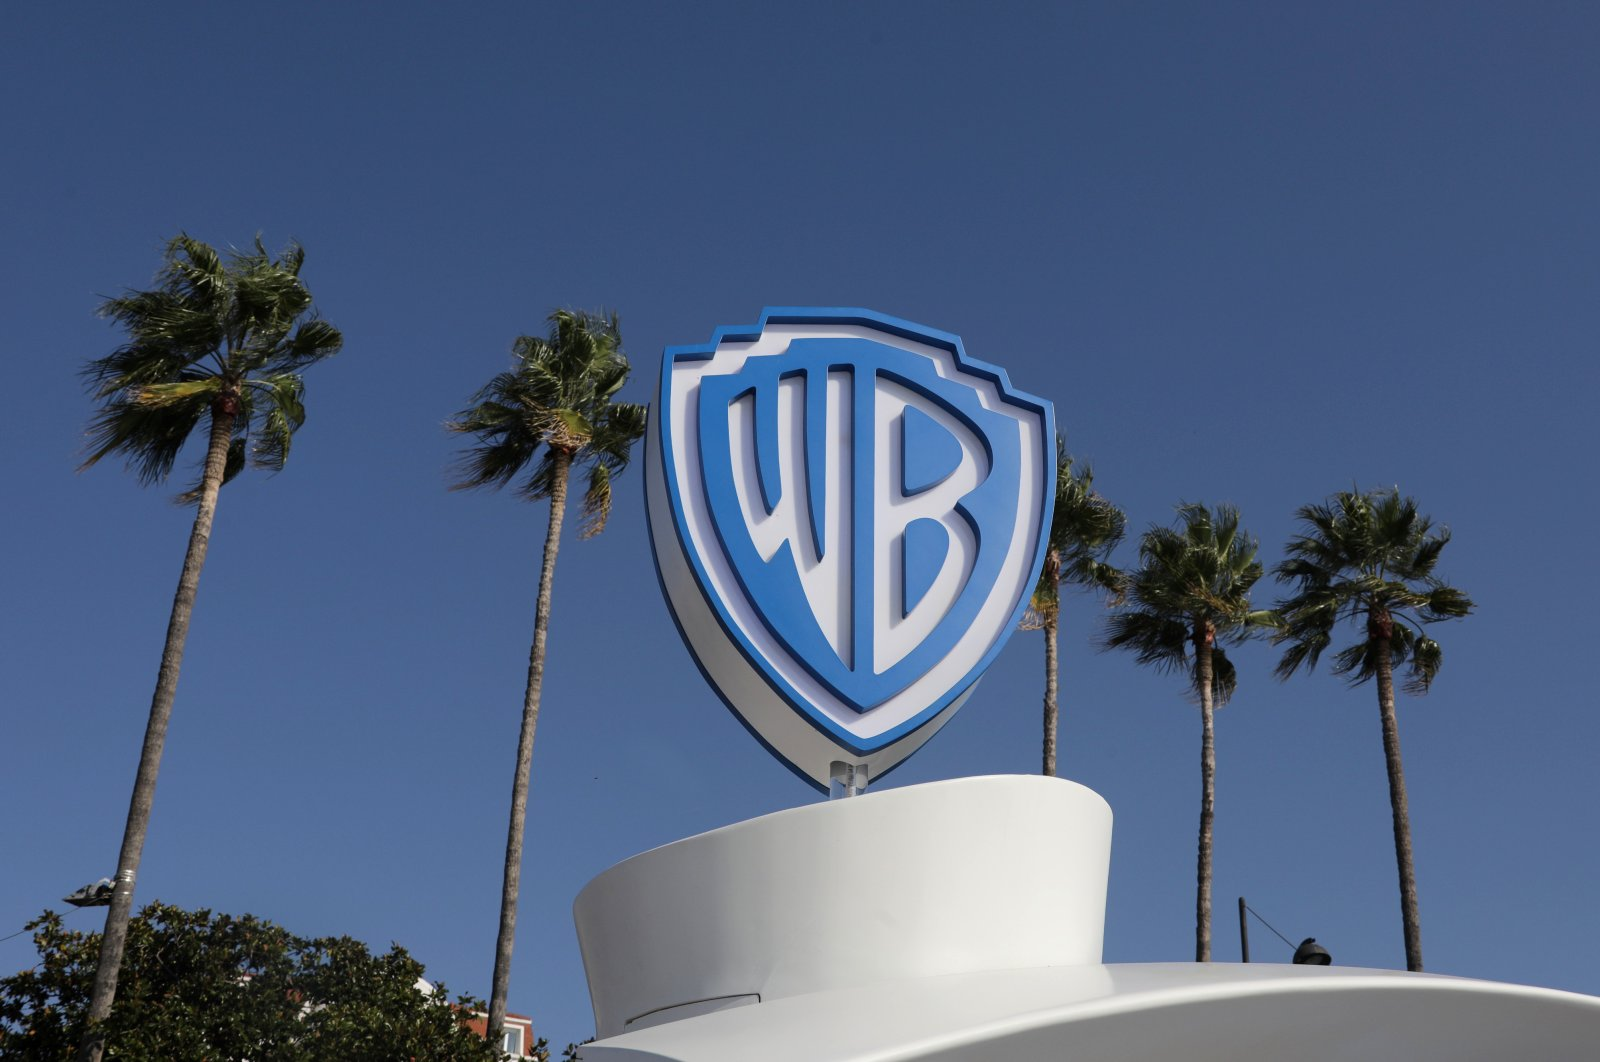 The Warner Bros logo is seen during the annual MIPCOM television program market in Cannes, France, Oct. 14, 2019. (Reuters Photo)